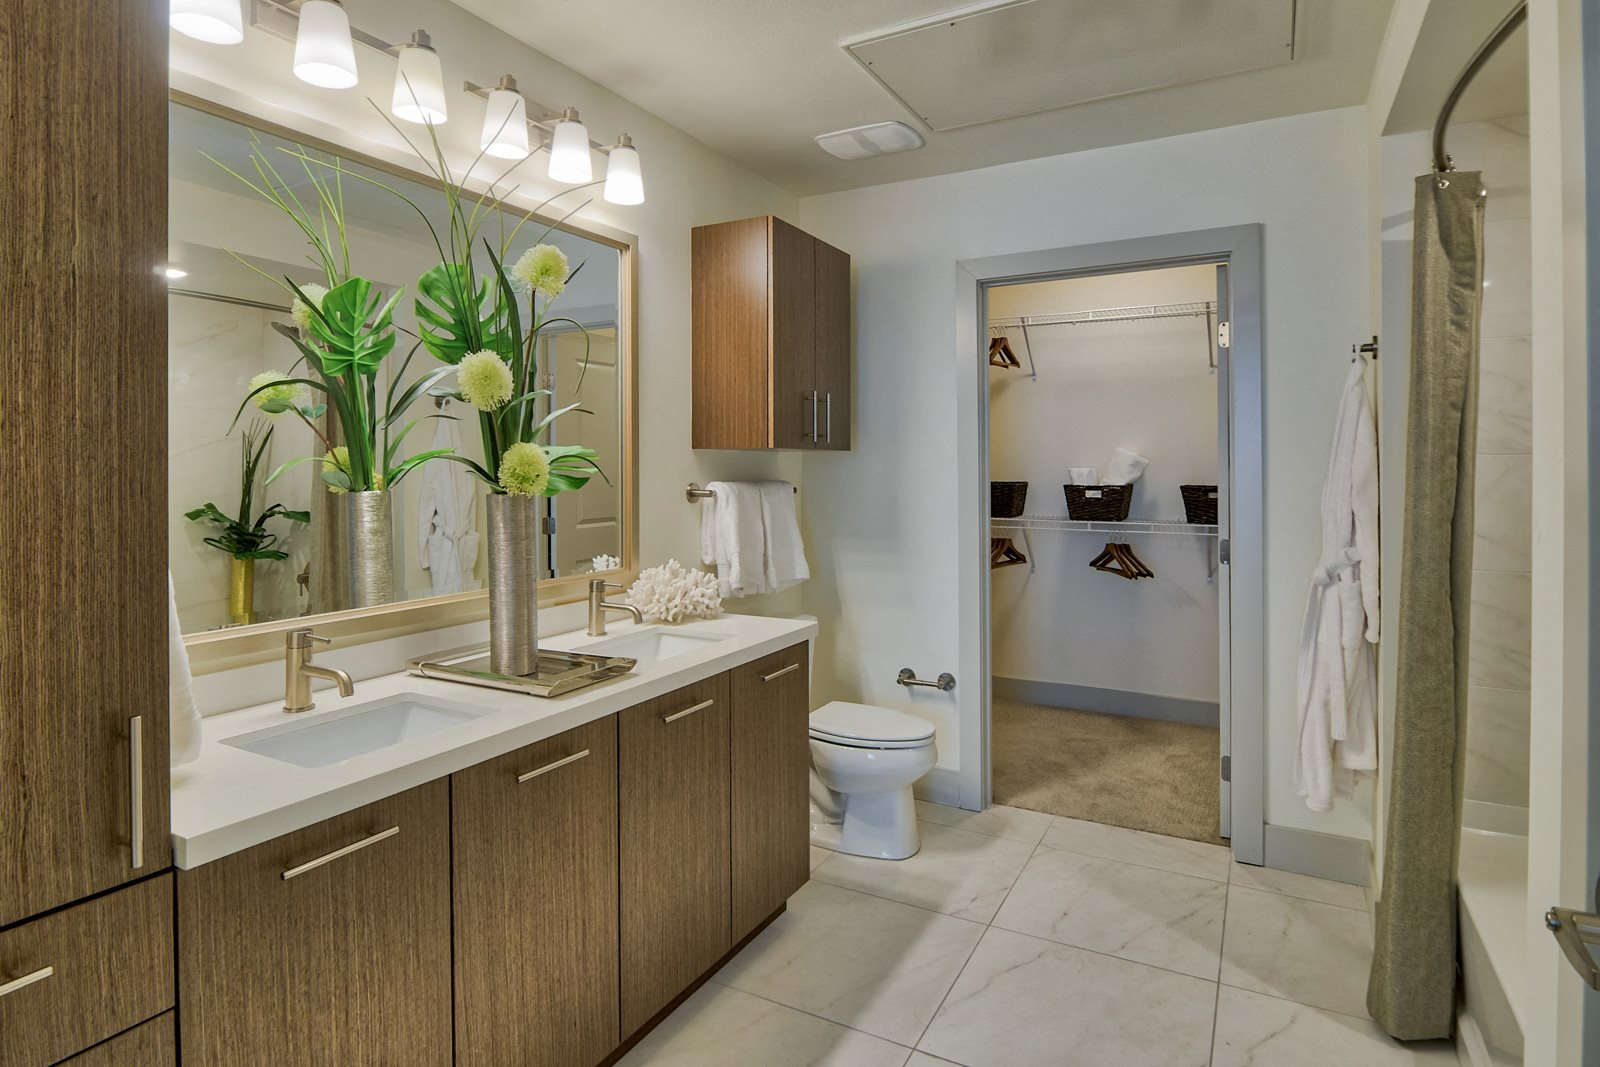 Dual Vanities and Stand-Up Shower at Olympic by Windsor, Los Angeles, California